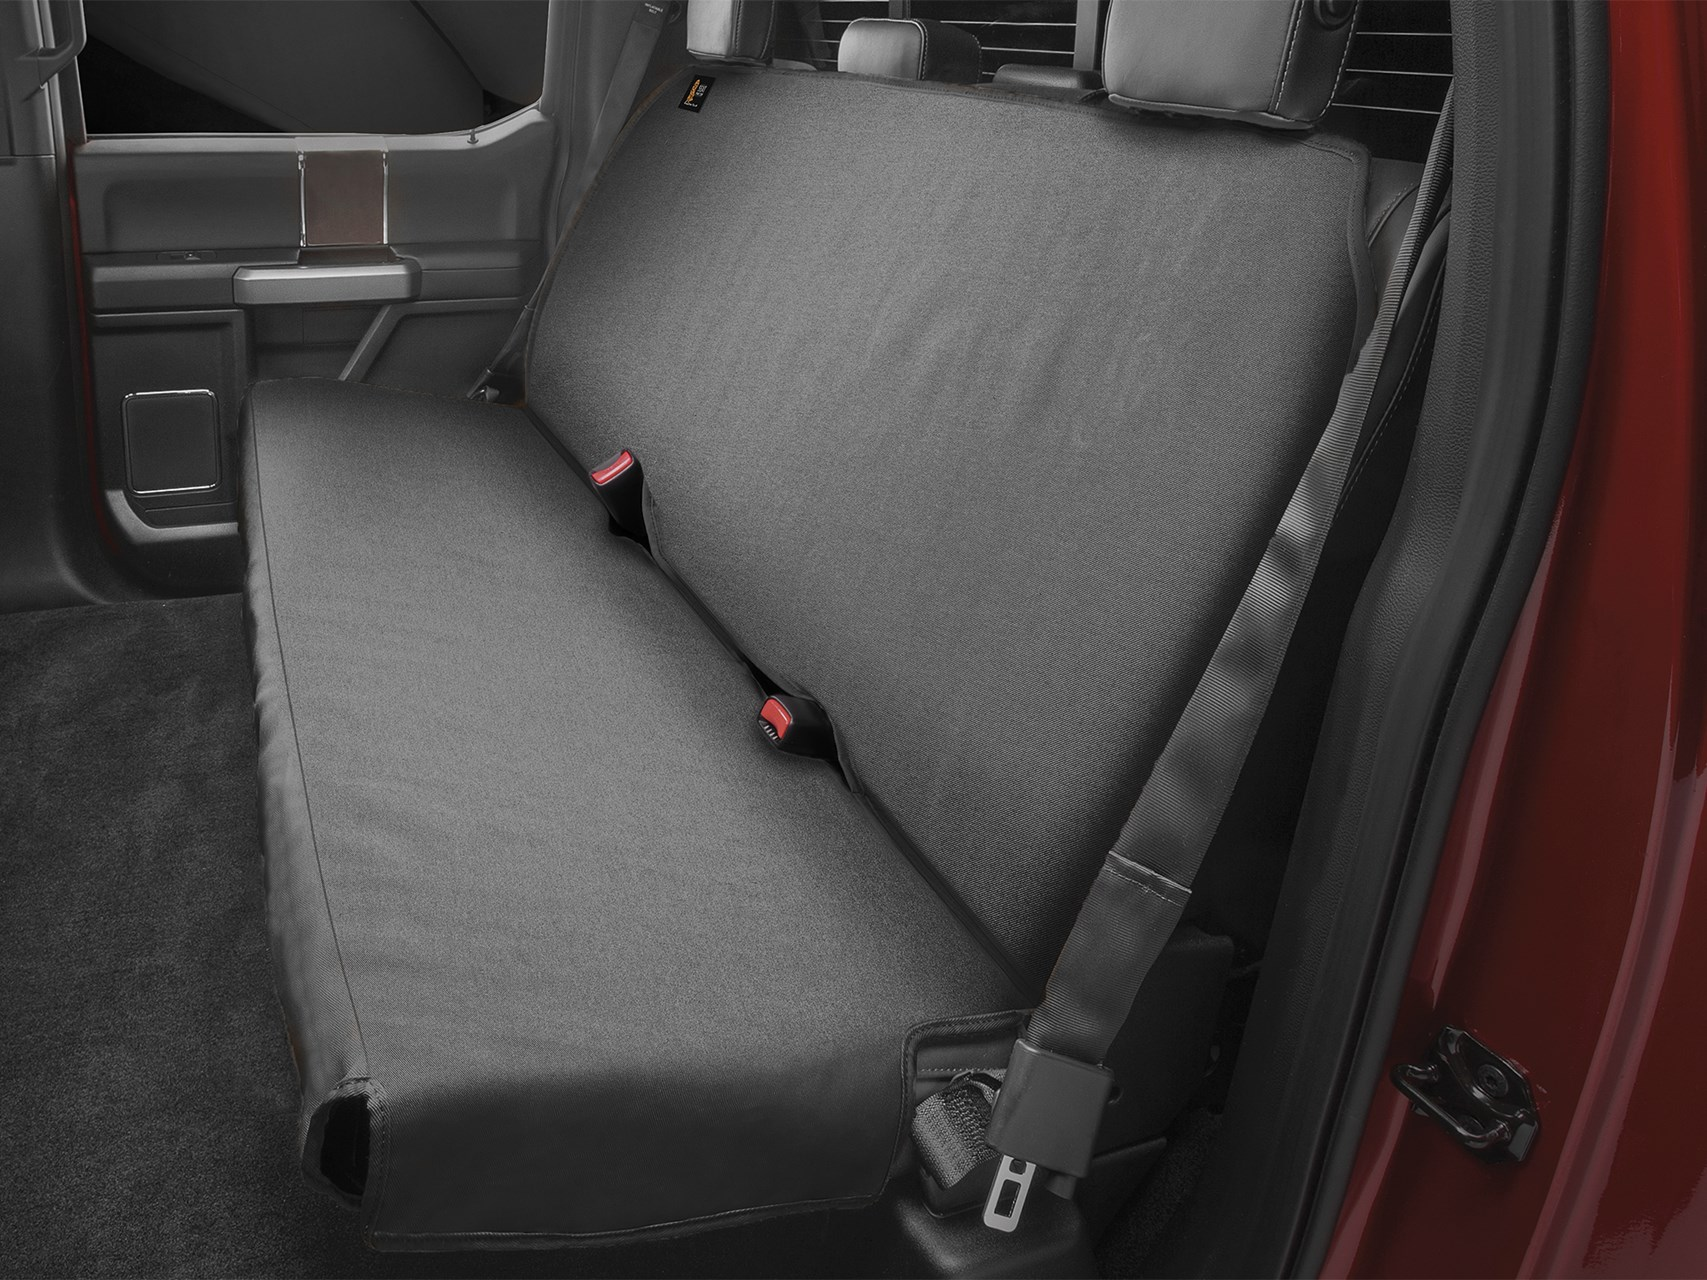 Seat ProtectorSeat Cover For Your Vehicle